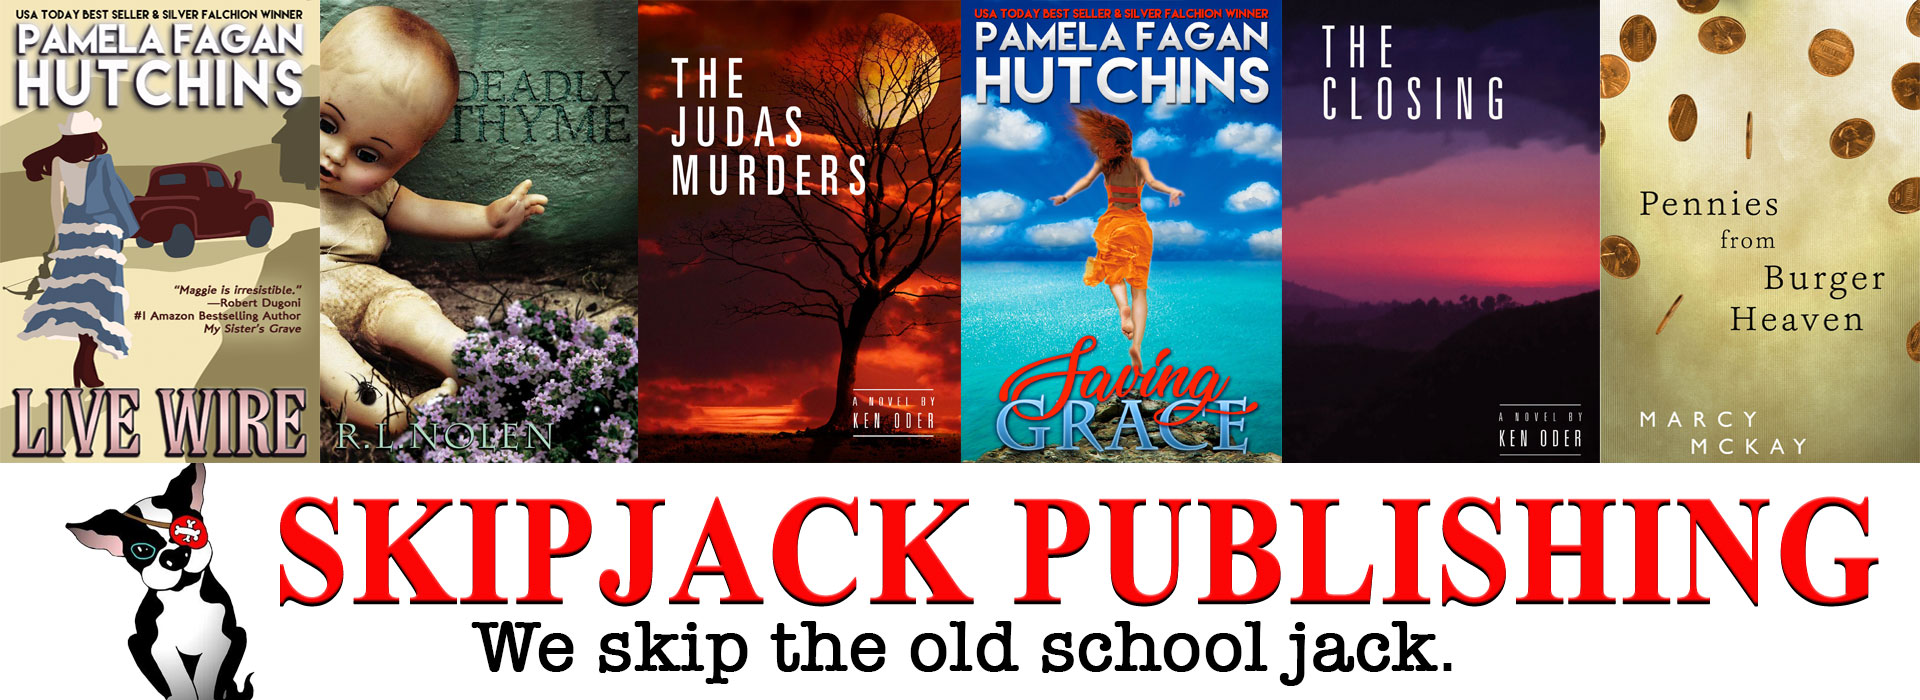 SkipJack Publishing